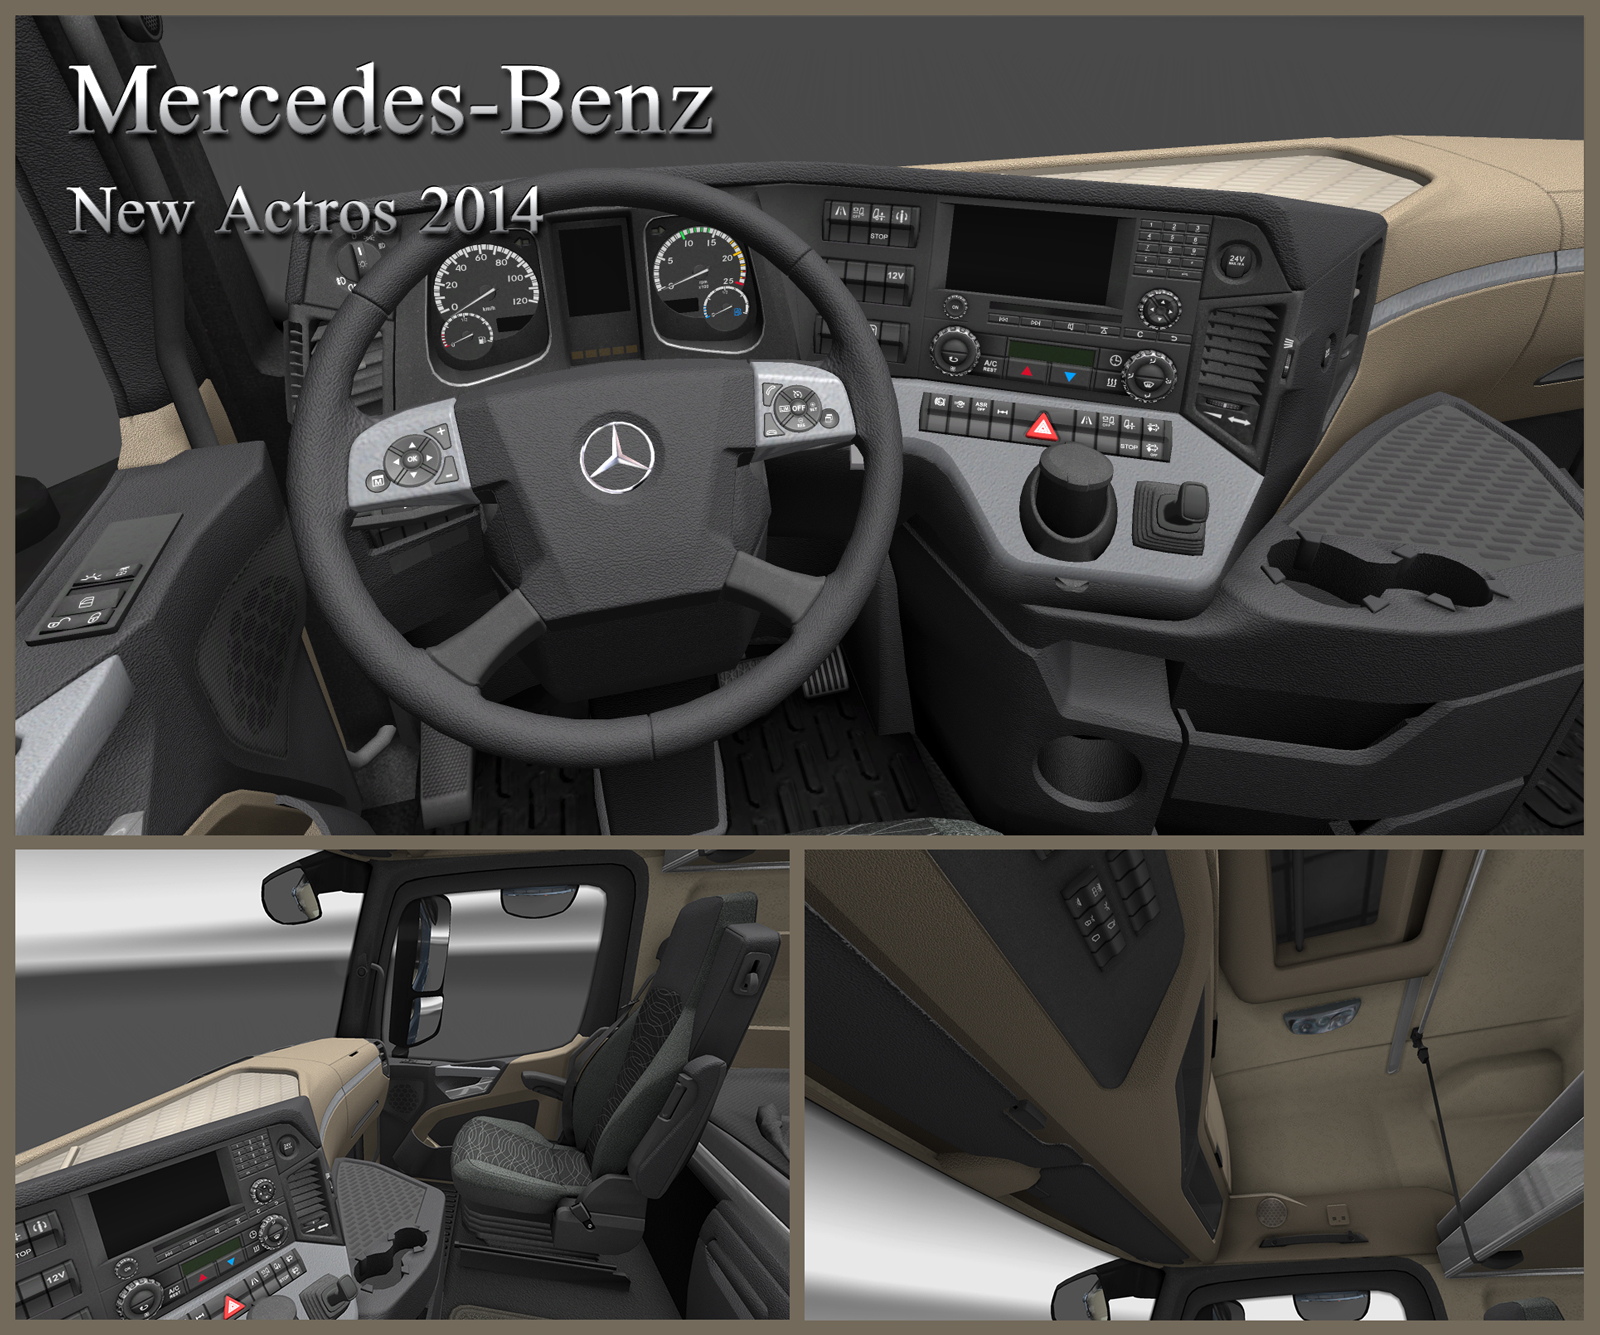 MB-New-Actros-2014-Interior.jpg